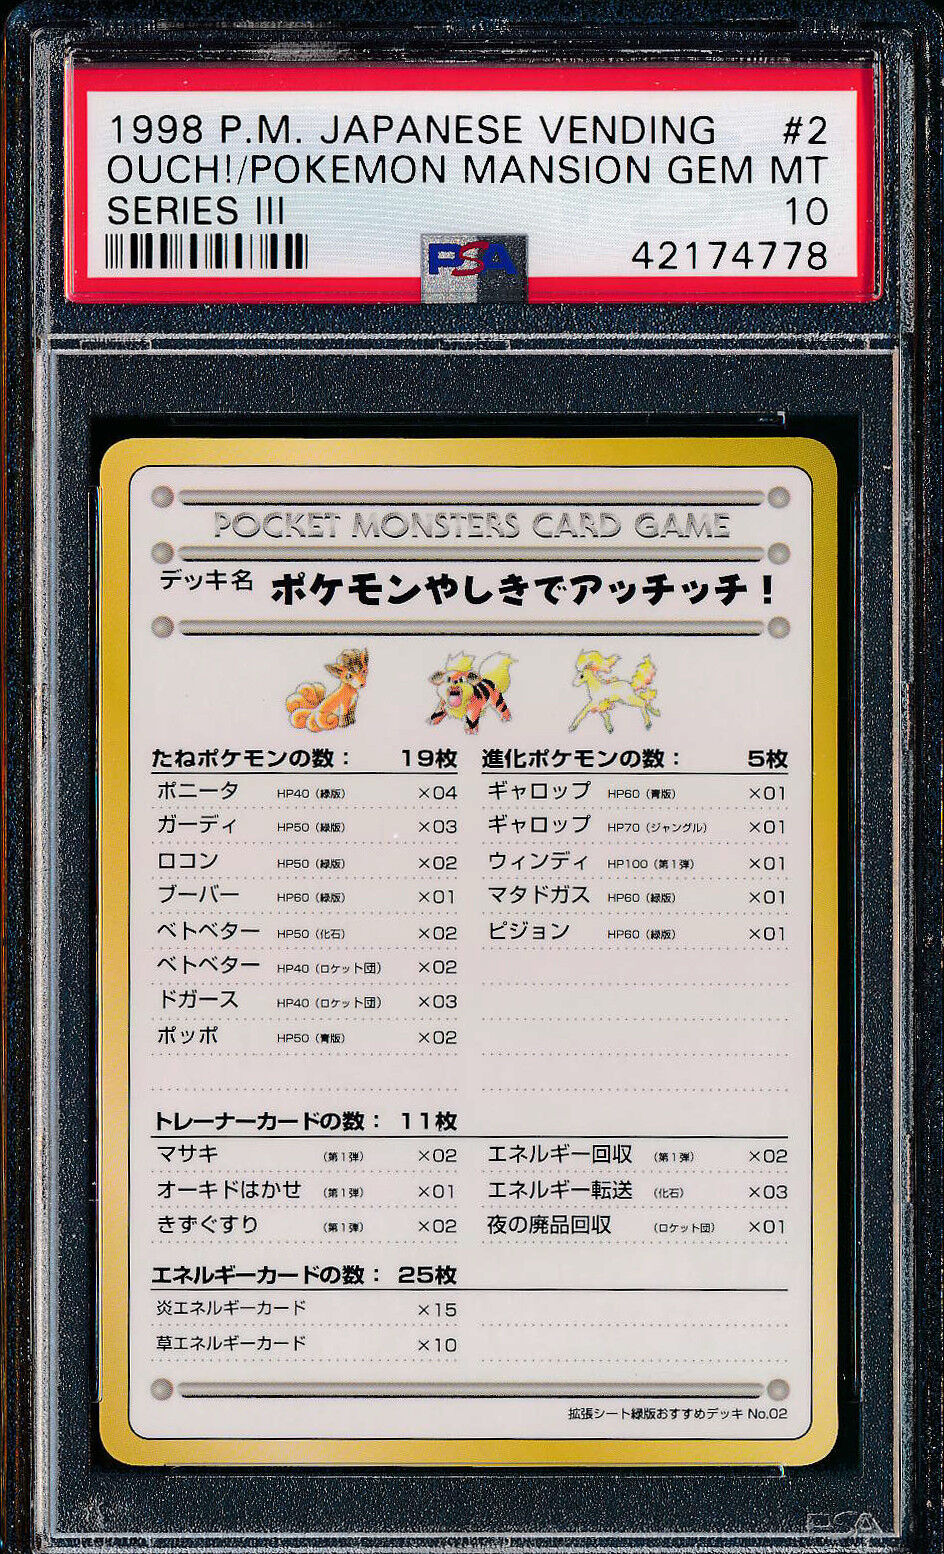 Pokey PSA GEM Mint tio japanska Vending Series 3 -III Aj   Pokemon Mansion 2